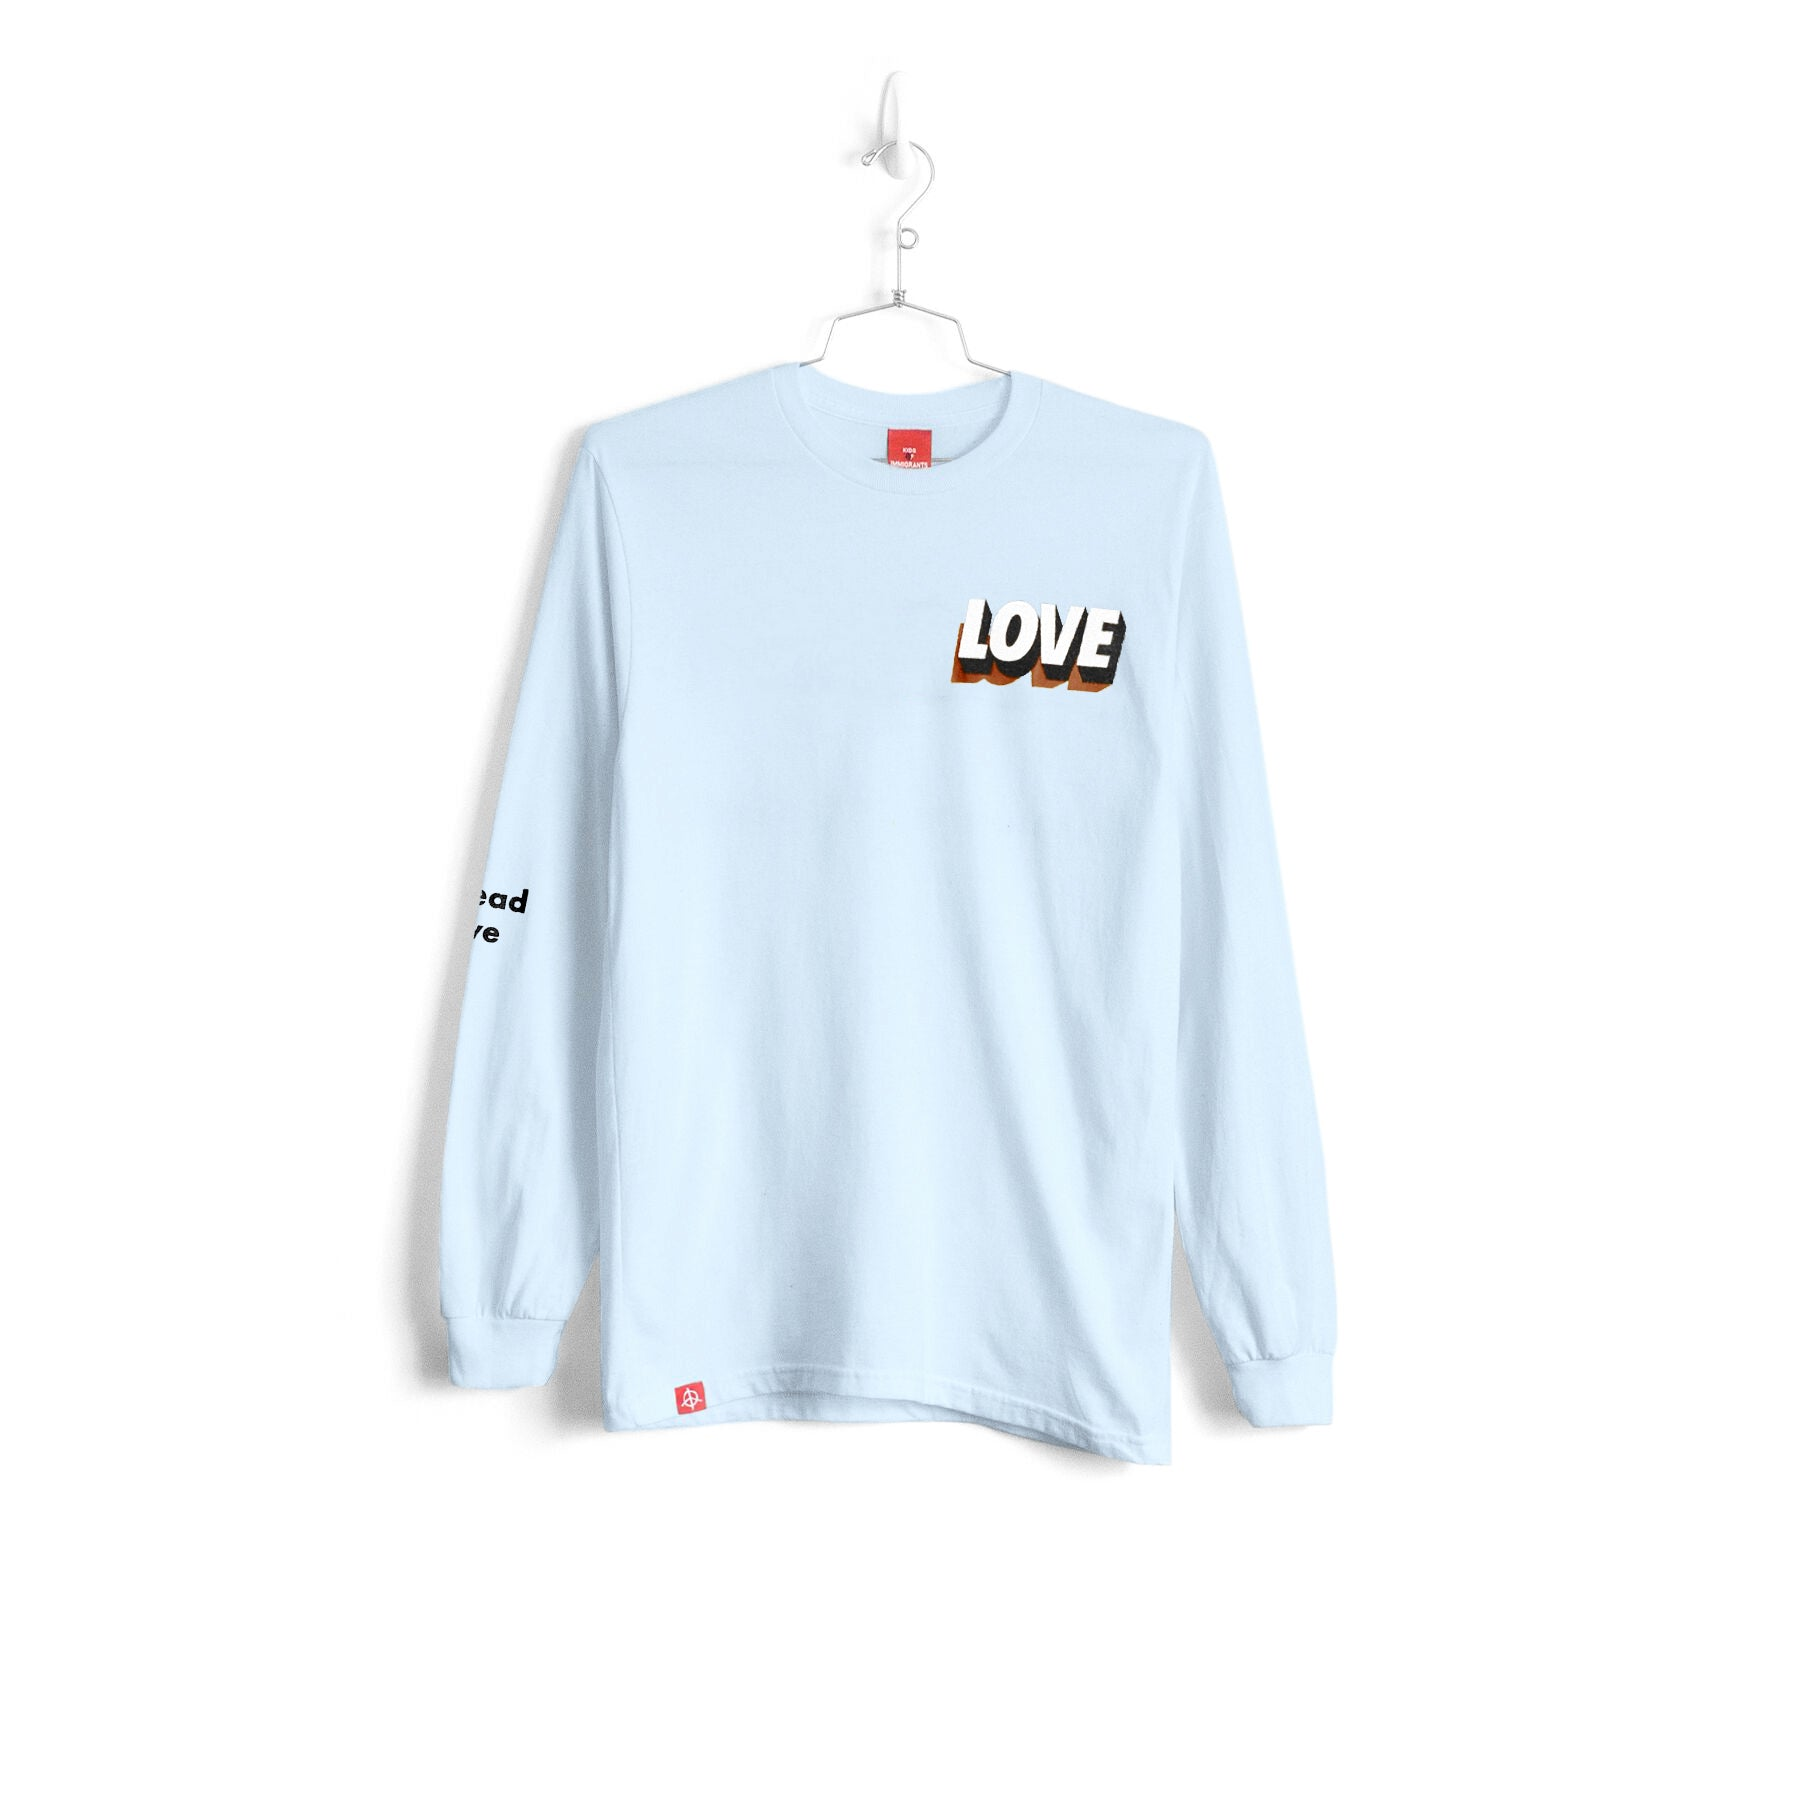 SPREAD LOVE 3.0 L/S - CHAMBRAY